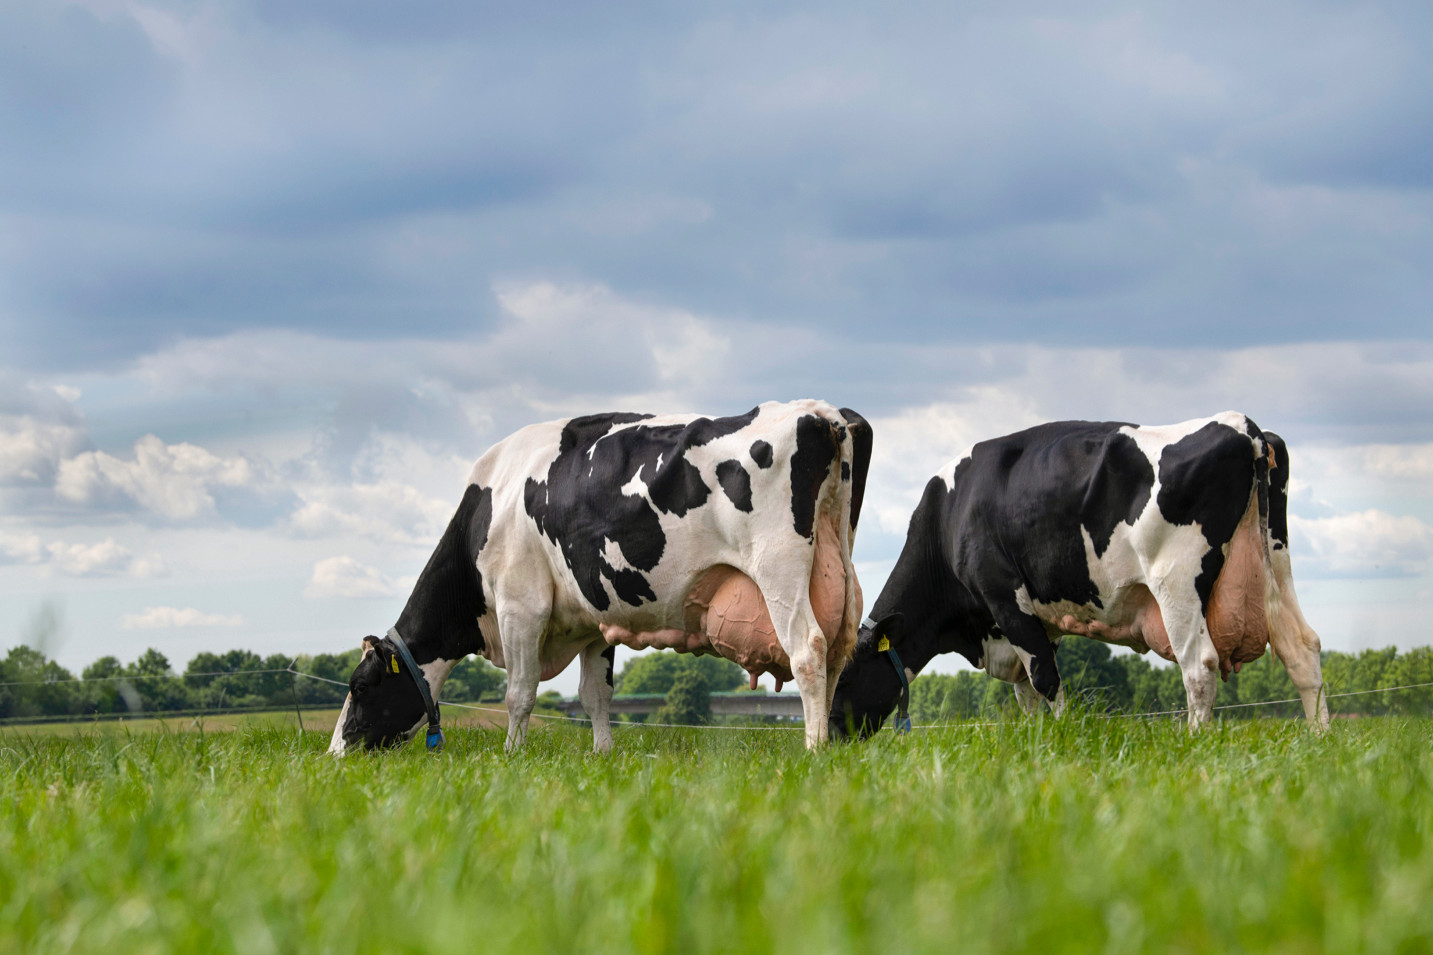 The lifetime production of Dutch dairy cows jumped to record levels in 2019-2020